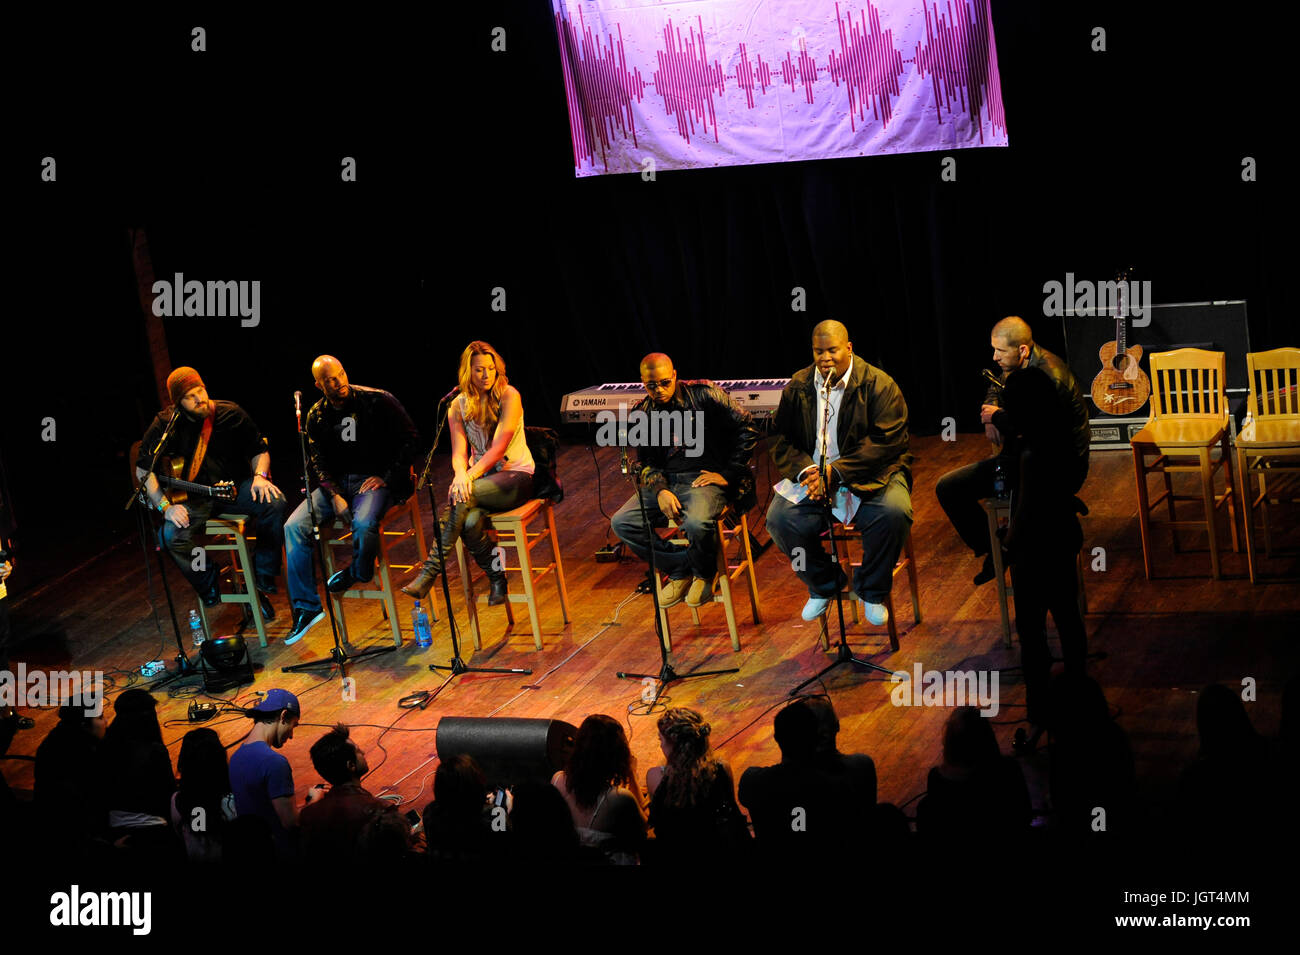 """(L-R) Zac Brown,Common,Colbie Caillat,Nas,Salaam Remi,Sebastian Krys stage BMI """"How I Wrote That Song"""" Panel House Stock Photo"""